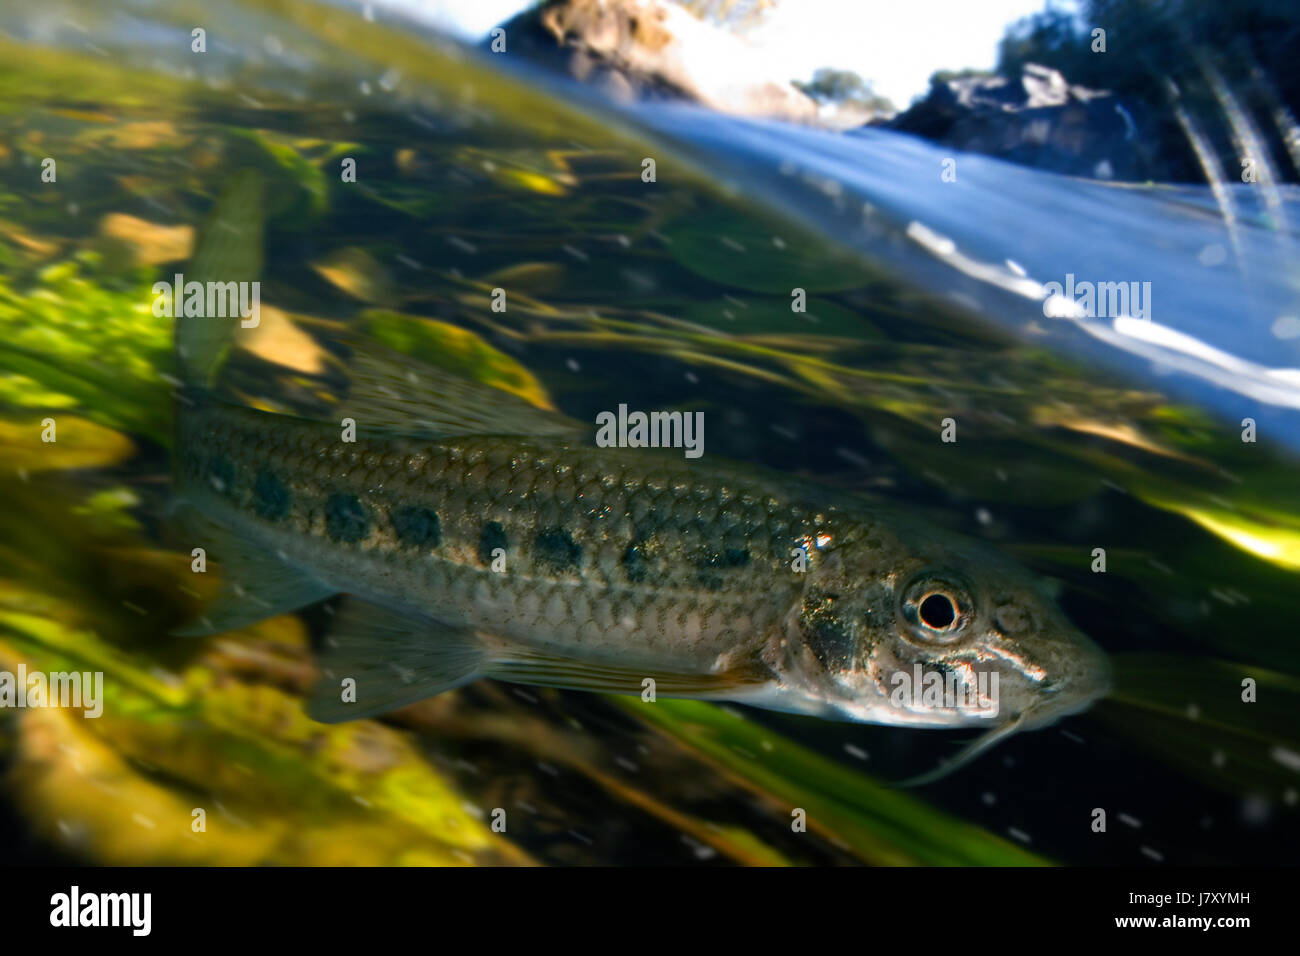 Iberian gudgeon, Gobio lozanoi, in shallow water. Portugal - Stock Image